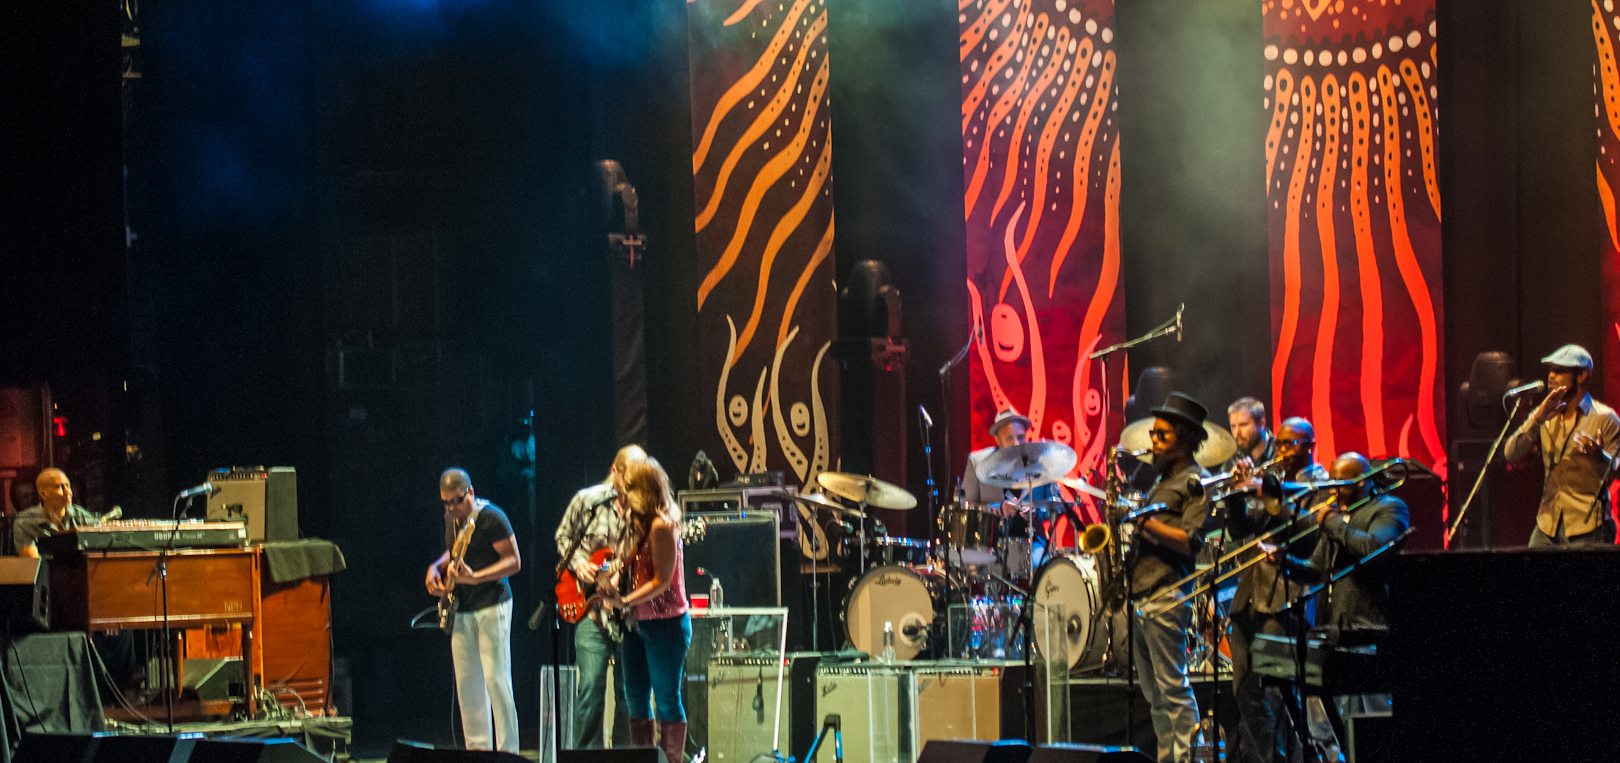 Kofi Burbridge, Oteil Burbridge, Derek Trucks, Susan Tedeschi, J.J. Johnson, Tyler Greenwell, Kebbie Williams, Maurice Brown, Saunders Sermons, and Mark Rivers with the Tedeschi Trucks Band at the Beacon